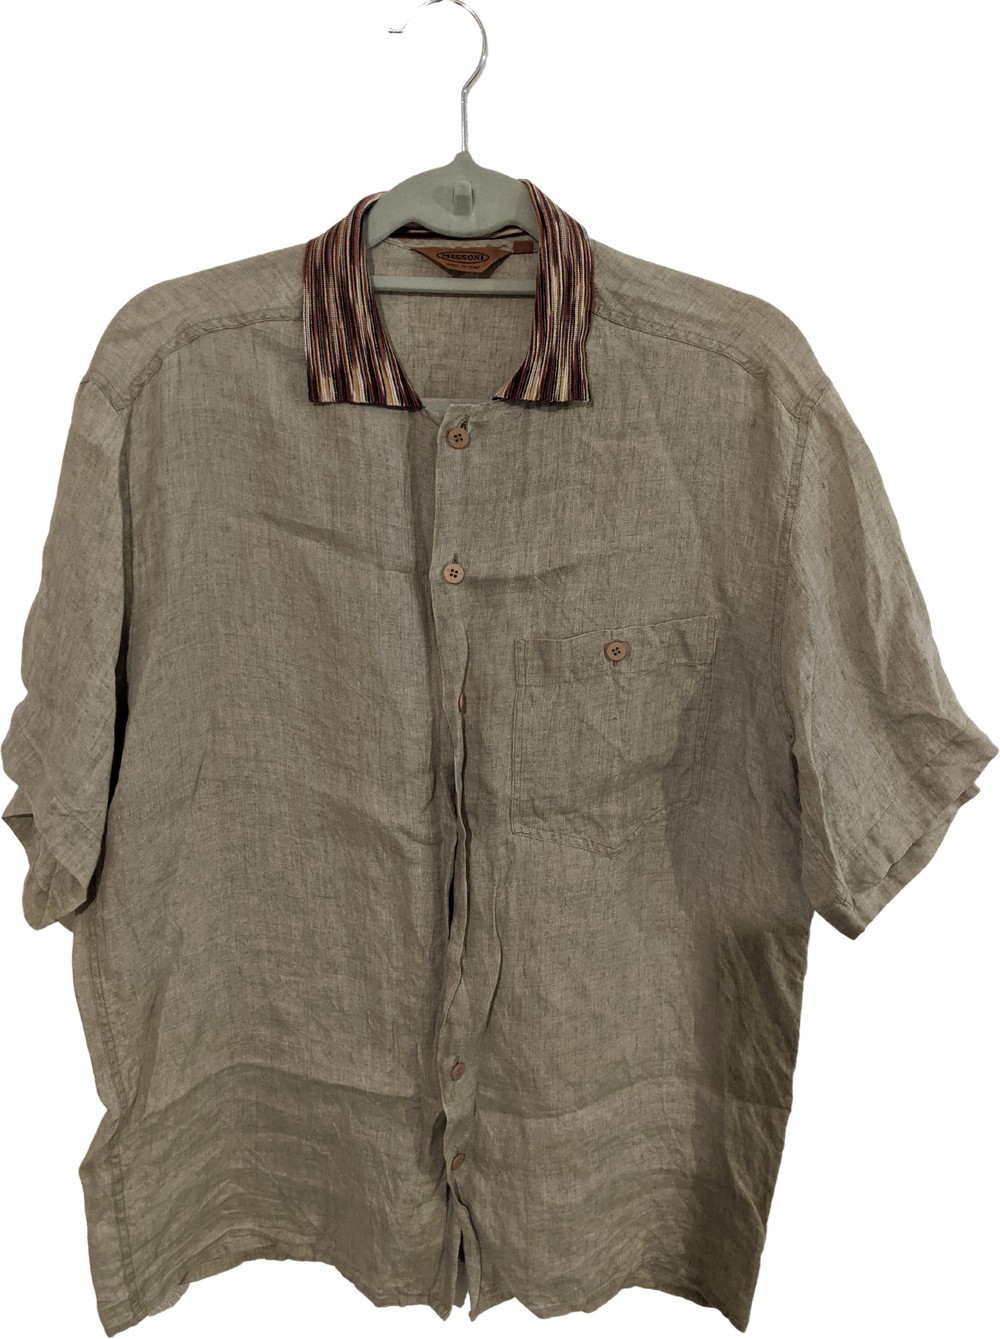 Straw-Burgundy Linen Missoni Shirt short sleeve Collar Detail